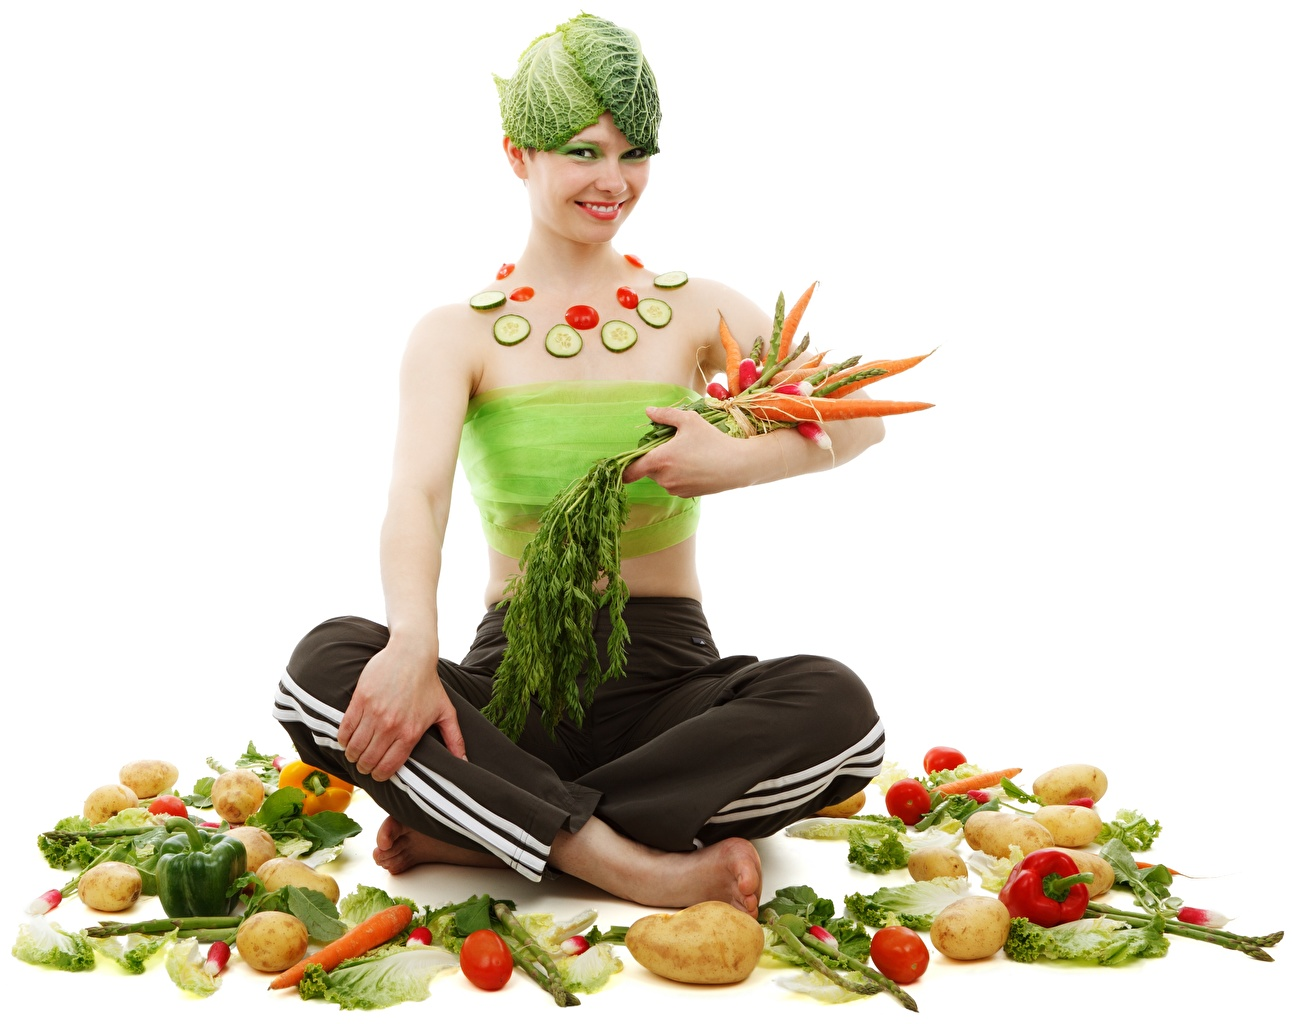 Images Padmasana Smile Potato Carrots young woman Creative sit Food Vegetables White background Lotus position Girls female Sitting